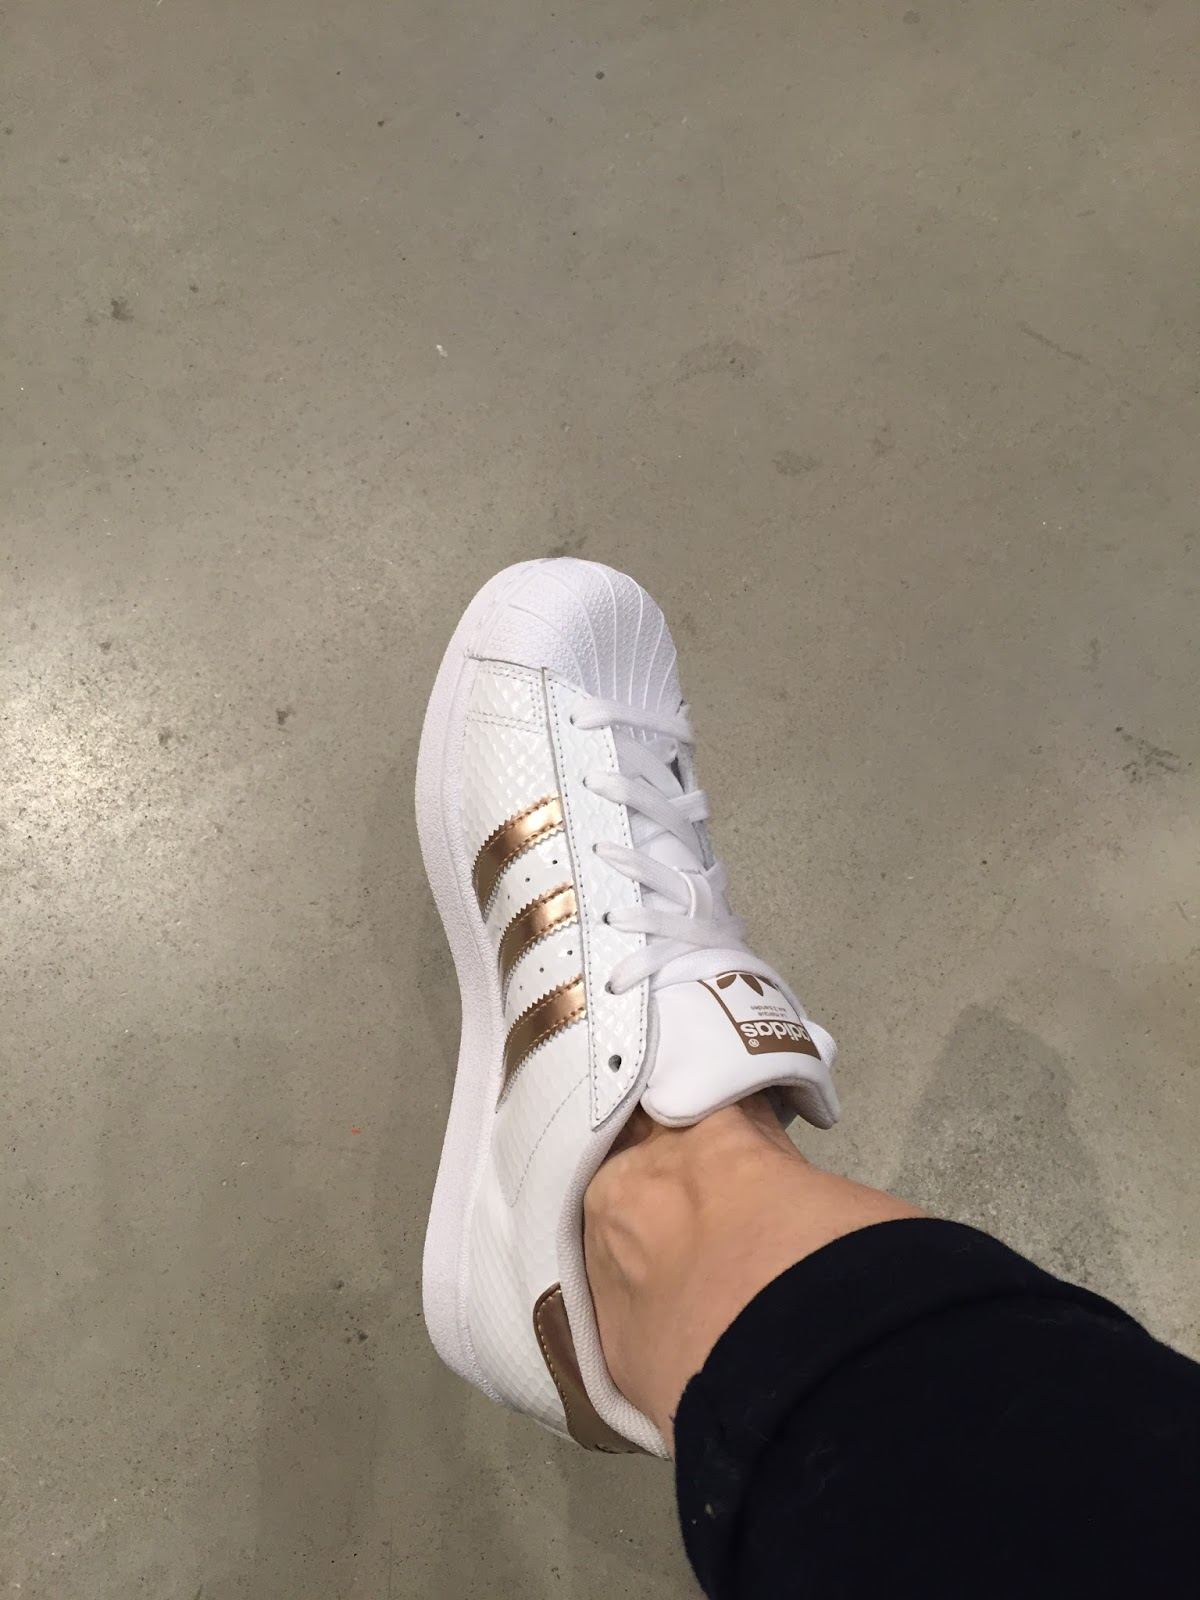 Adidas Superstar Shoes All Colors potassiumstore.co.uk